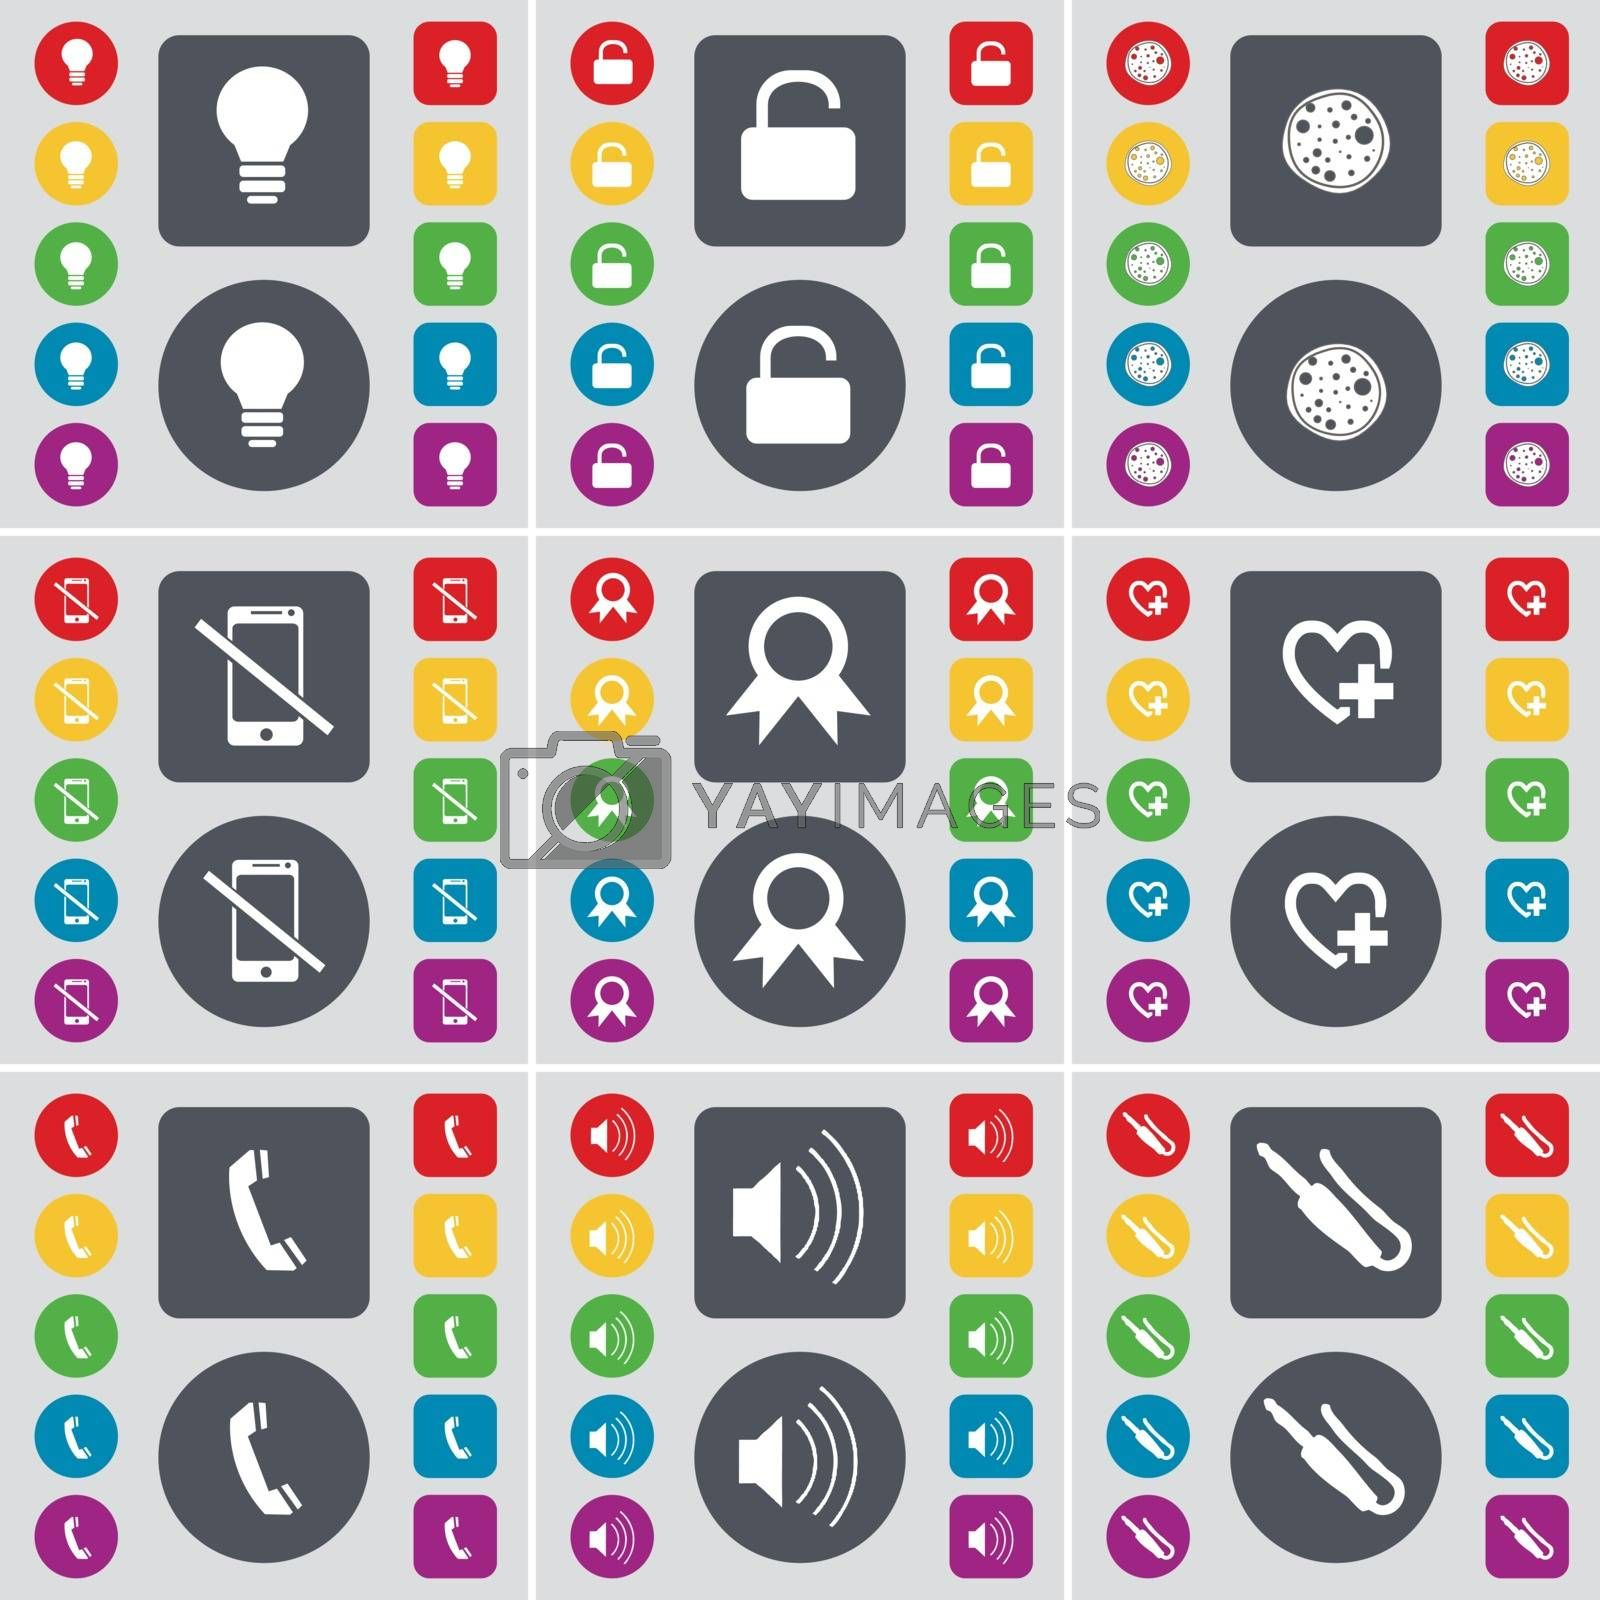 Royalty free image of Light bulb, Lock, Pizza, Smartphone, Medal, Heart, Receiver, Sound, Microphone connector icon symbol. A large set of flat, colored buttons for your design. Vector by serhii_lohvyniuk